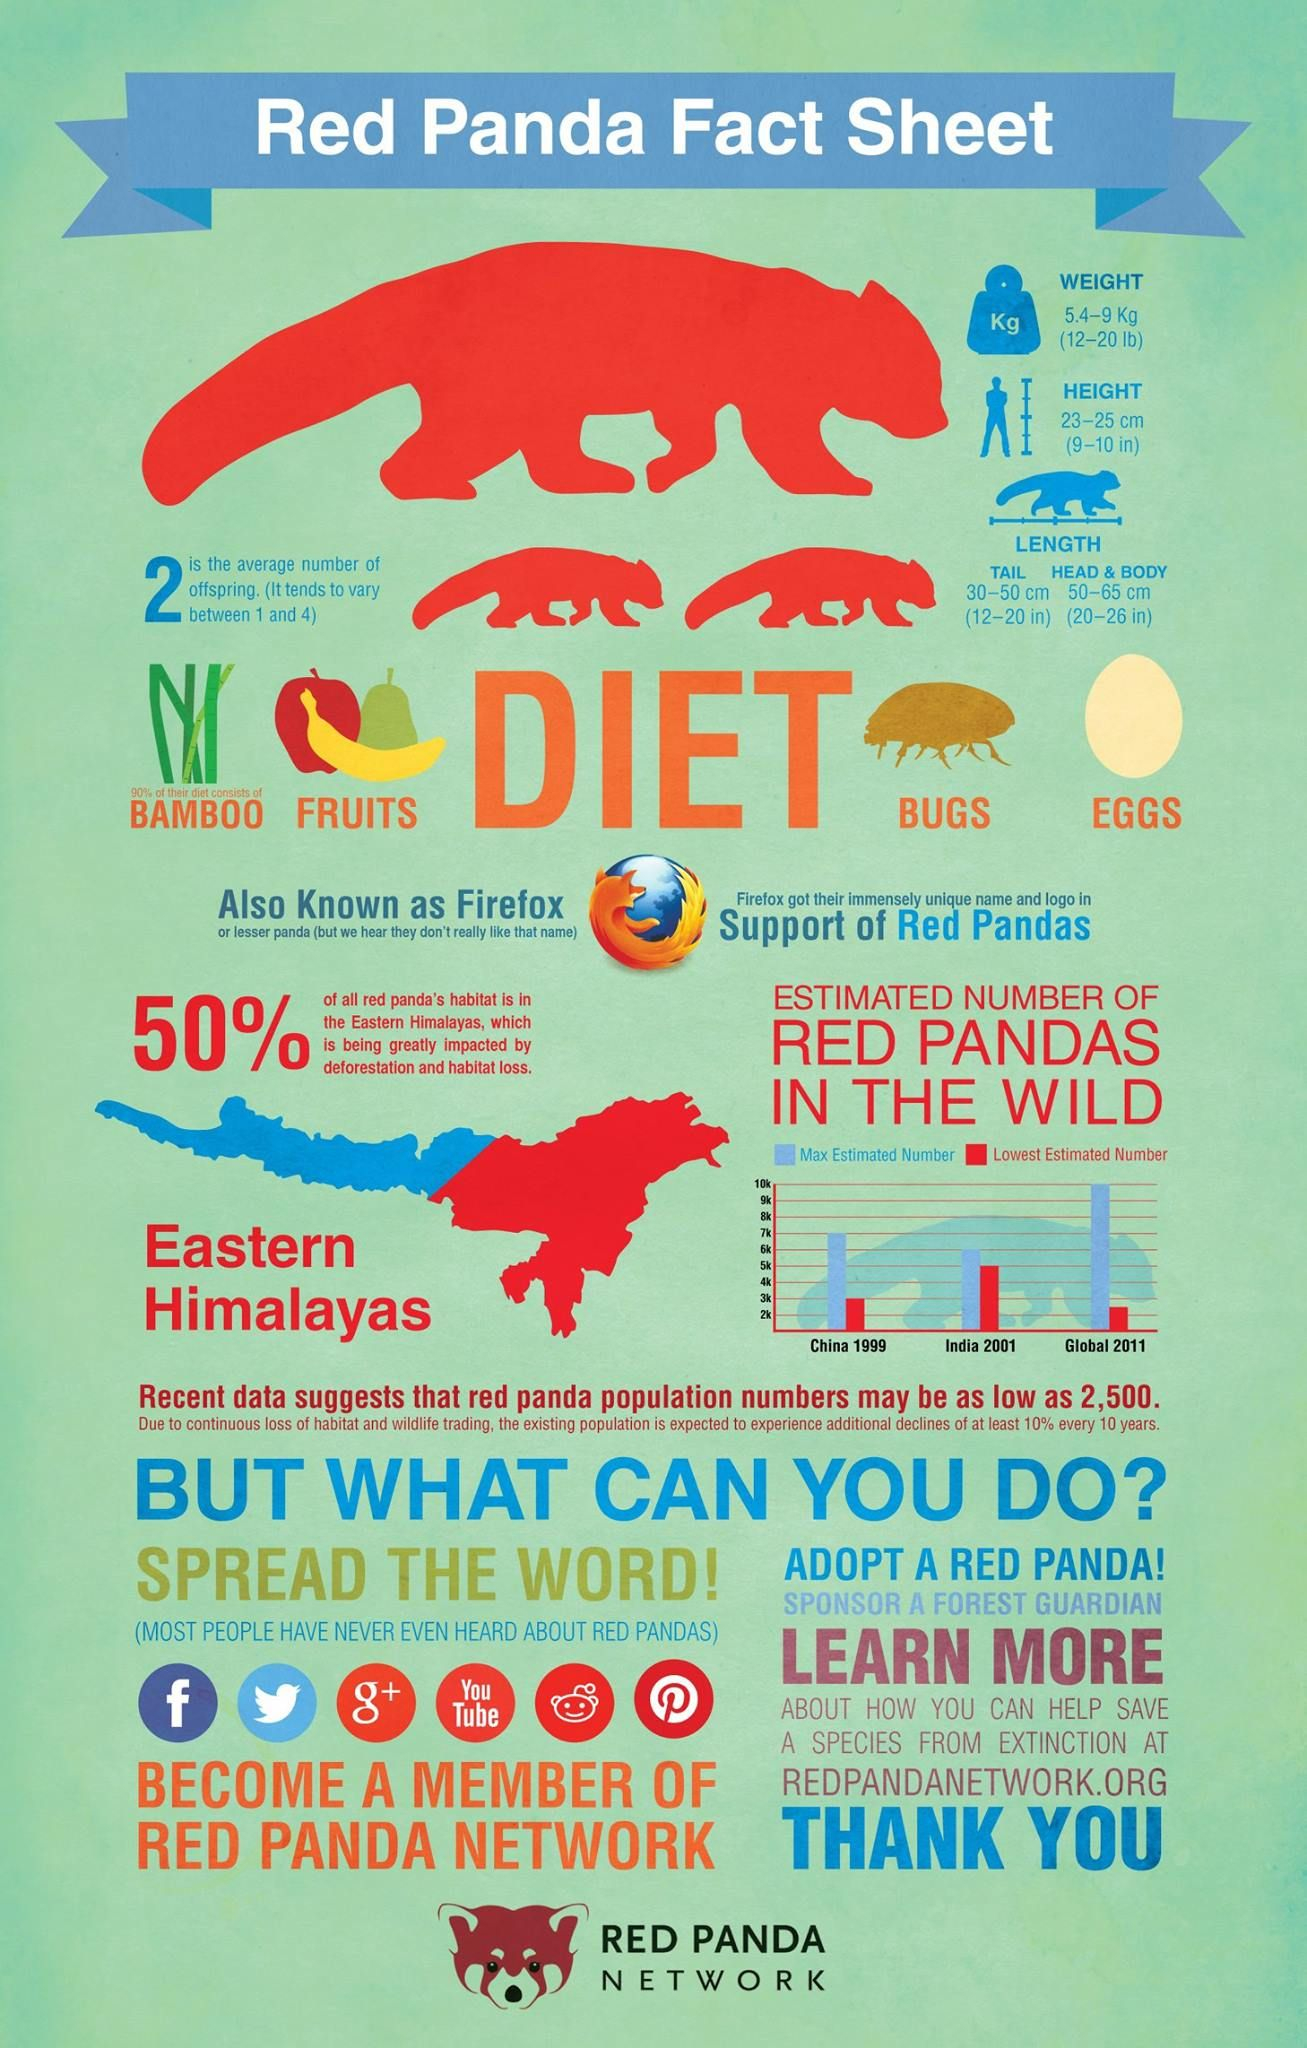 Red Panda Fact Sheet Infographic